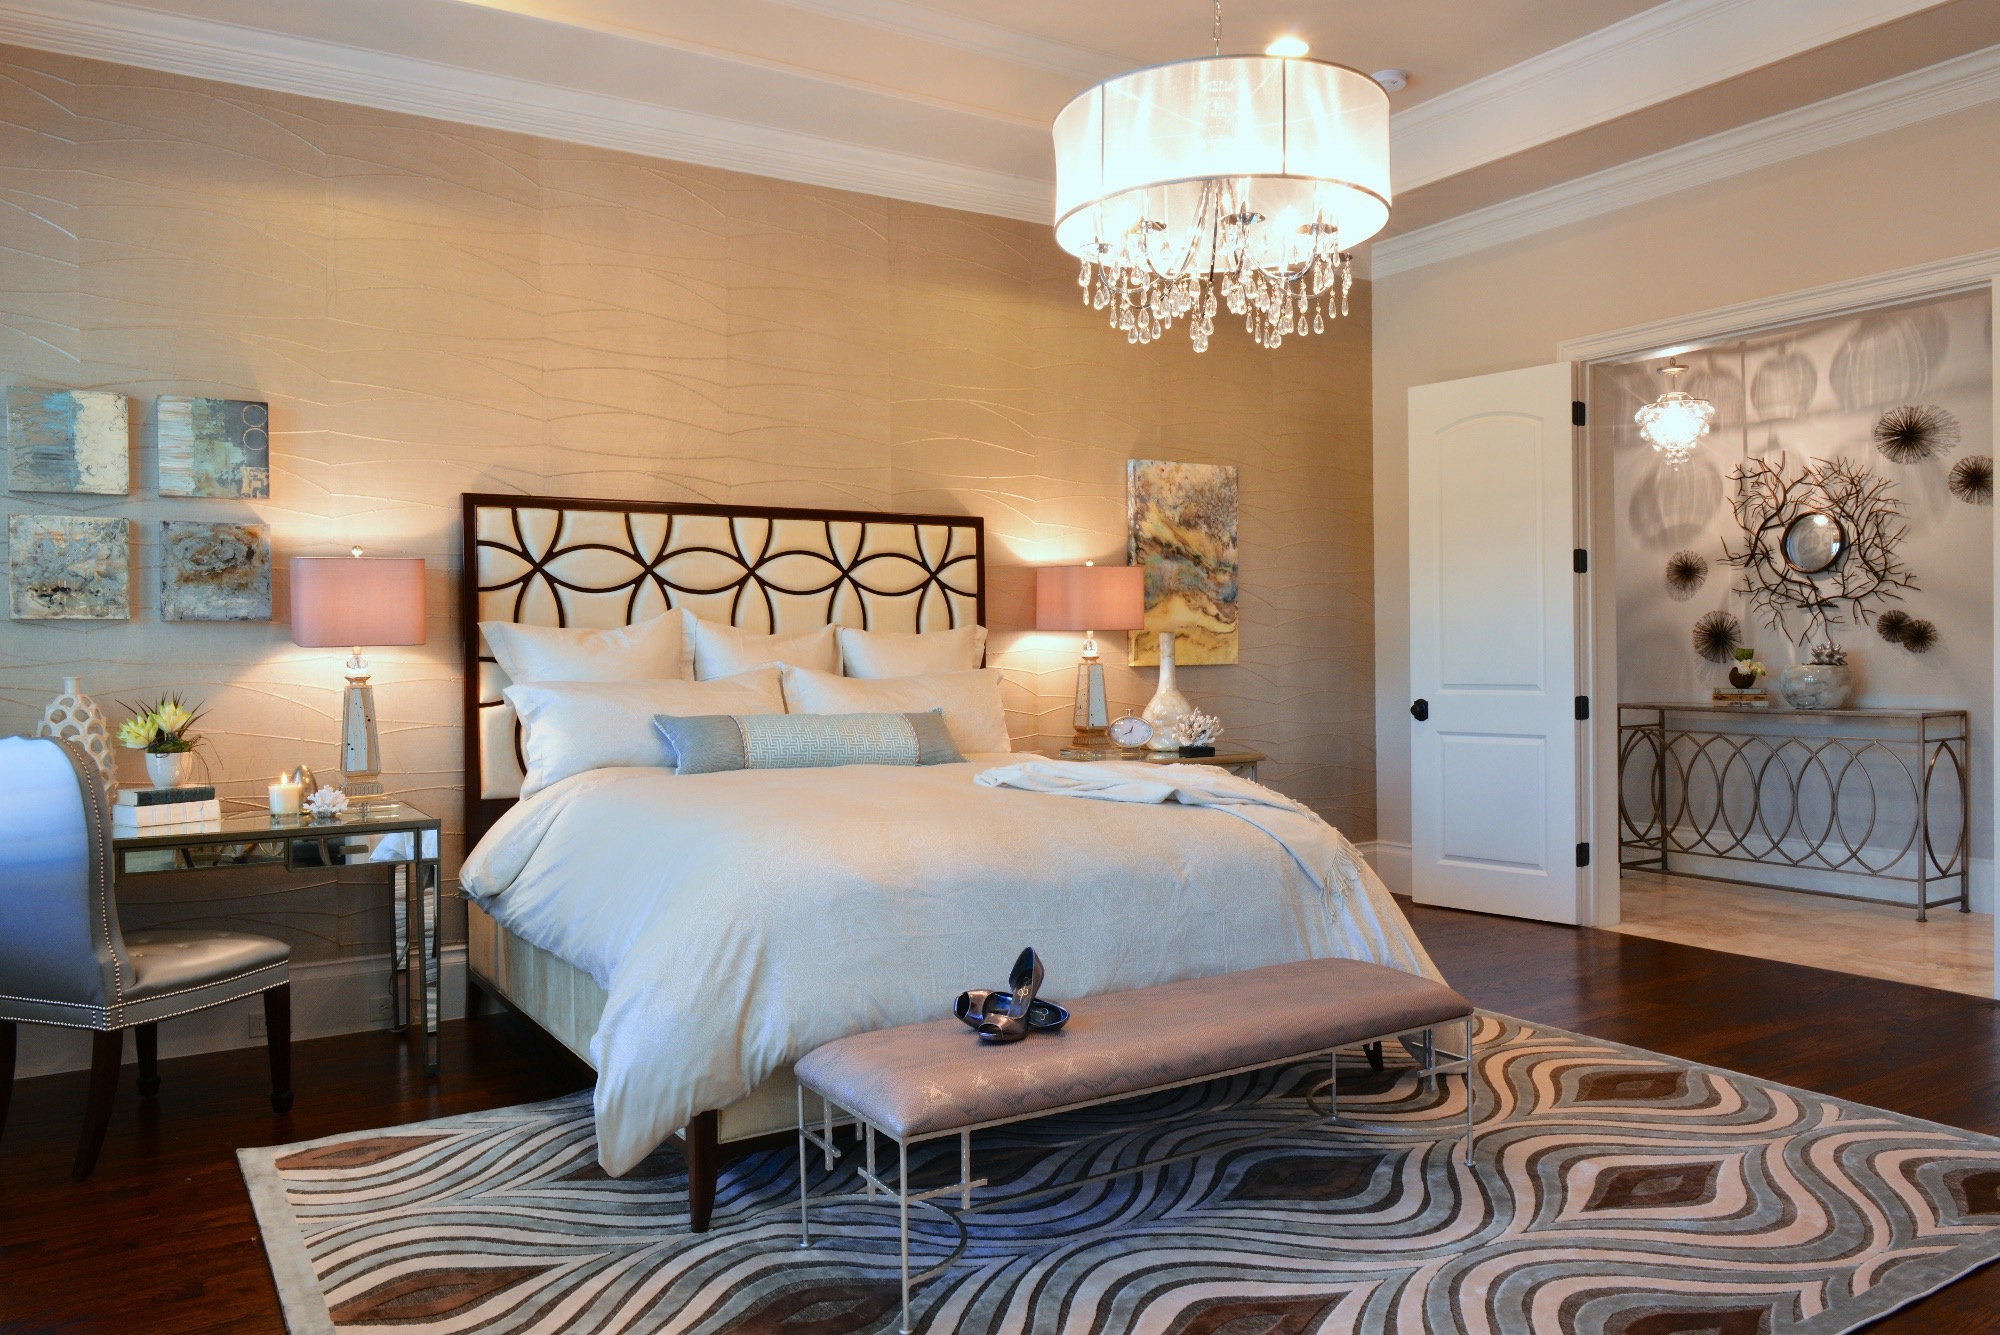 Deluxe Master Bedroom With Metallic Accents For Luxurious Nuance (View 7 of 16)